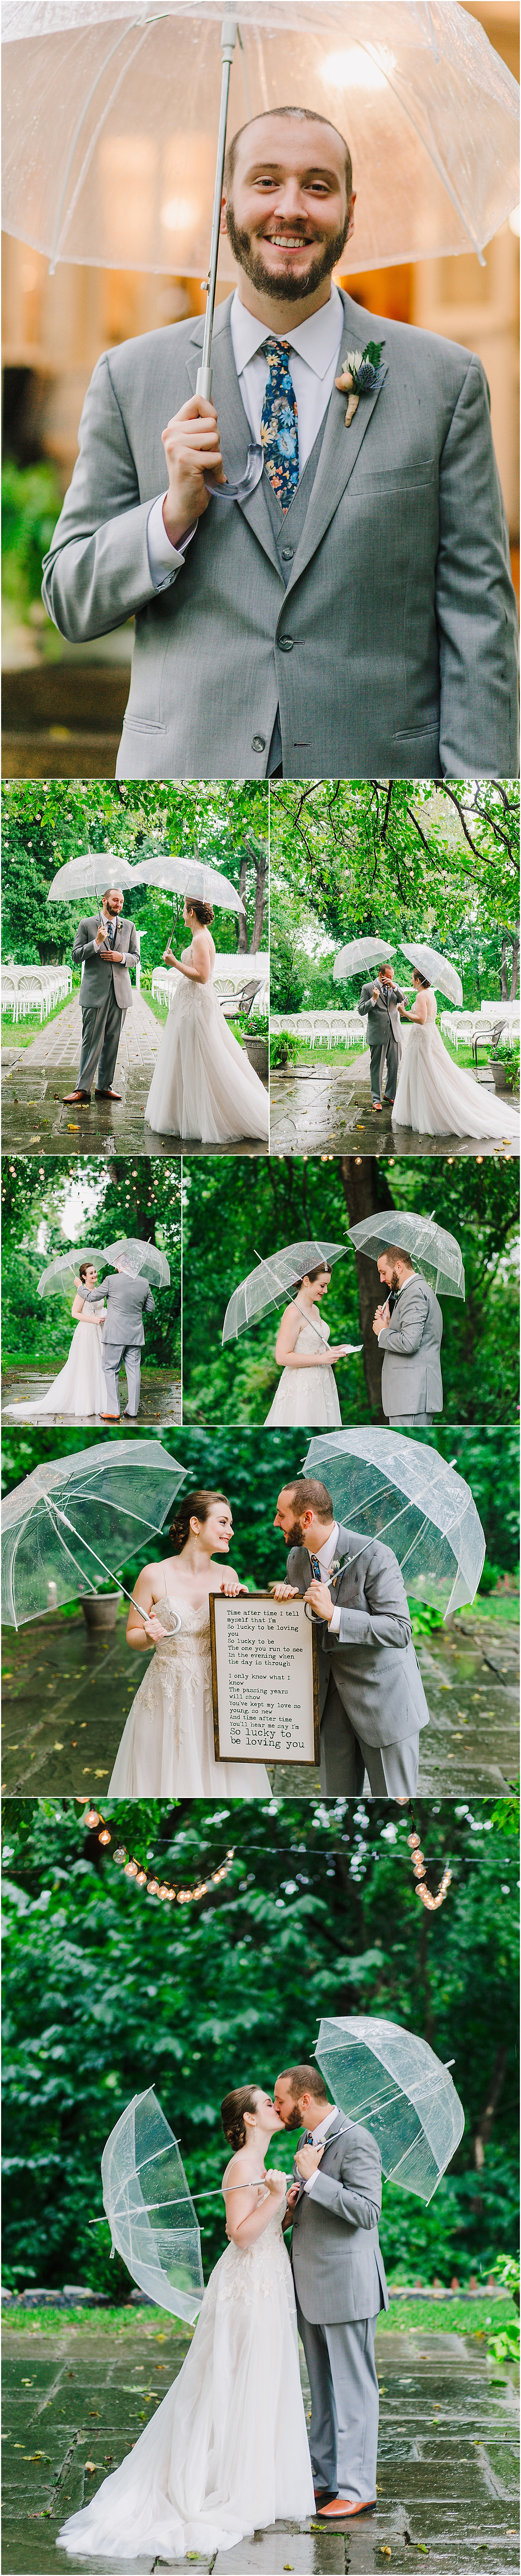 Romantic First Look in the Rain - Baltimore Wedding Photographer